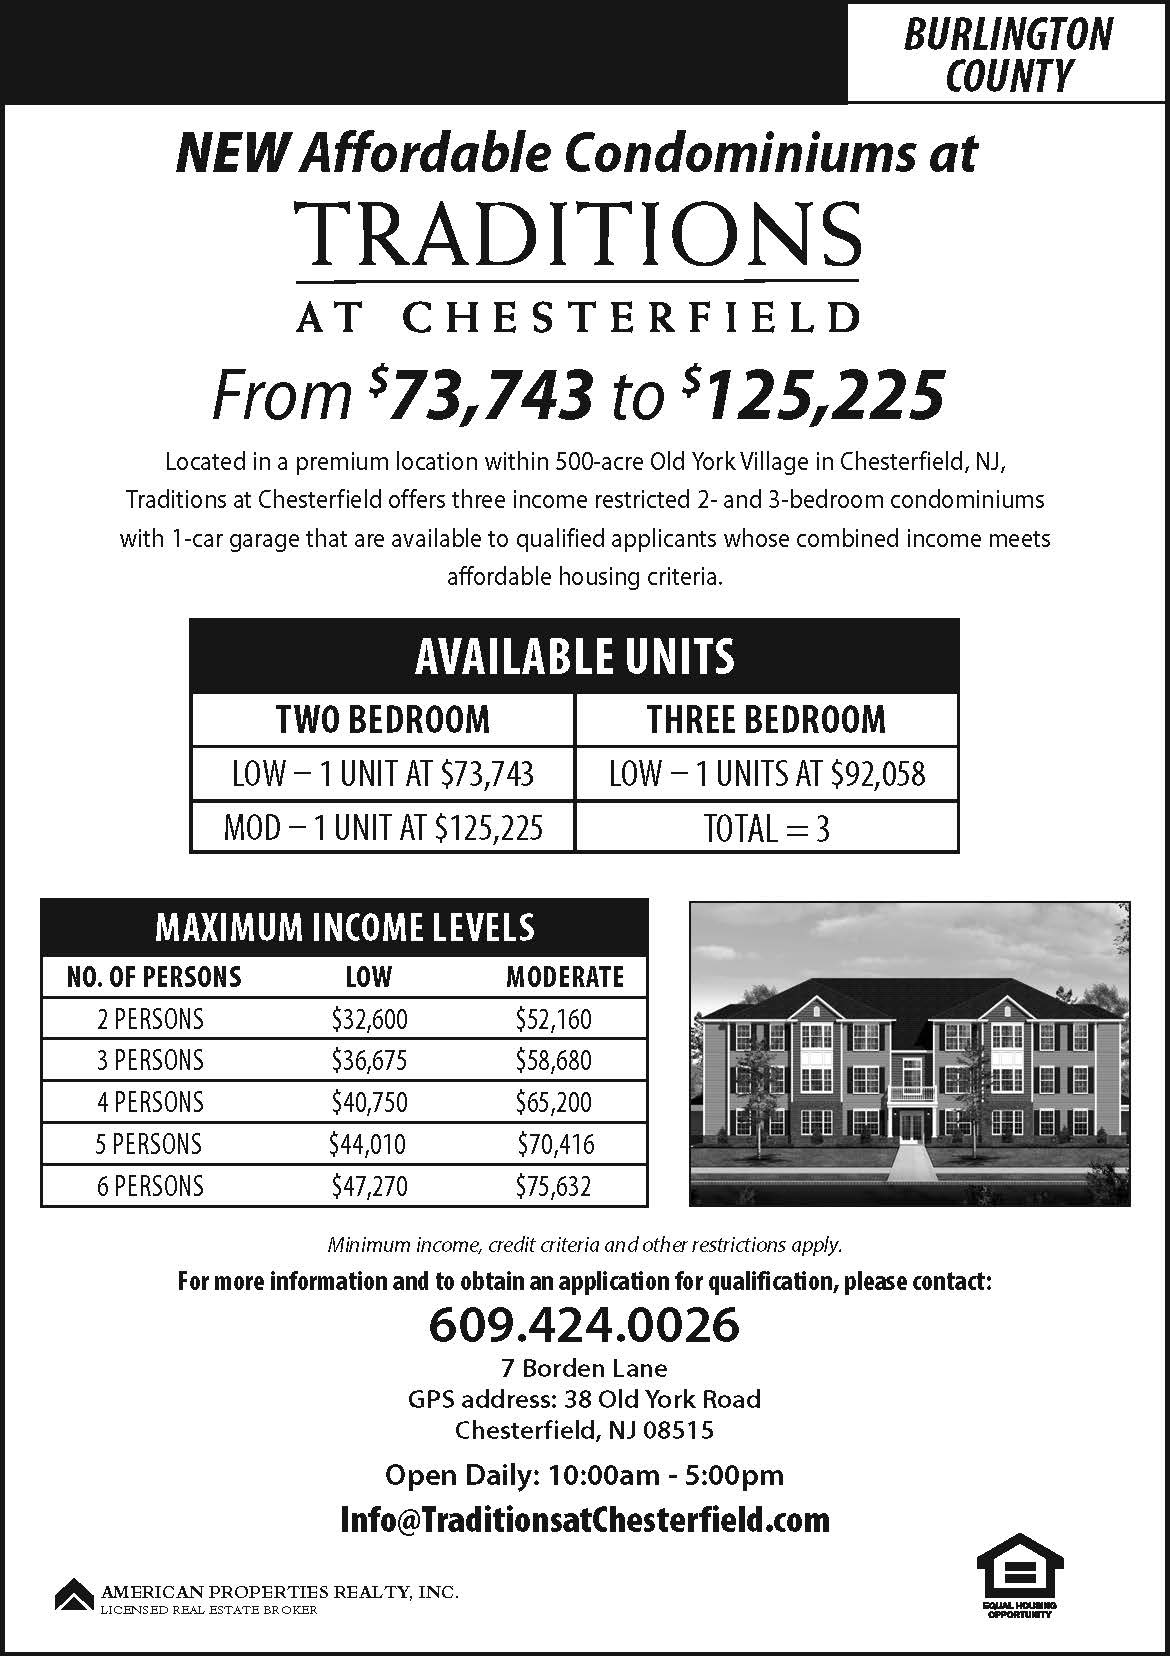 New Affordable Condominiums Now Available at Traditions at Chesterfield